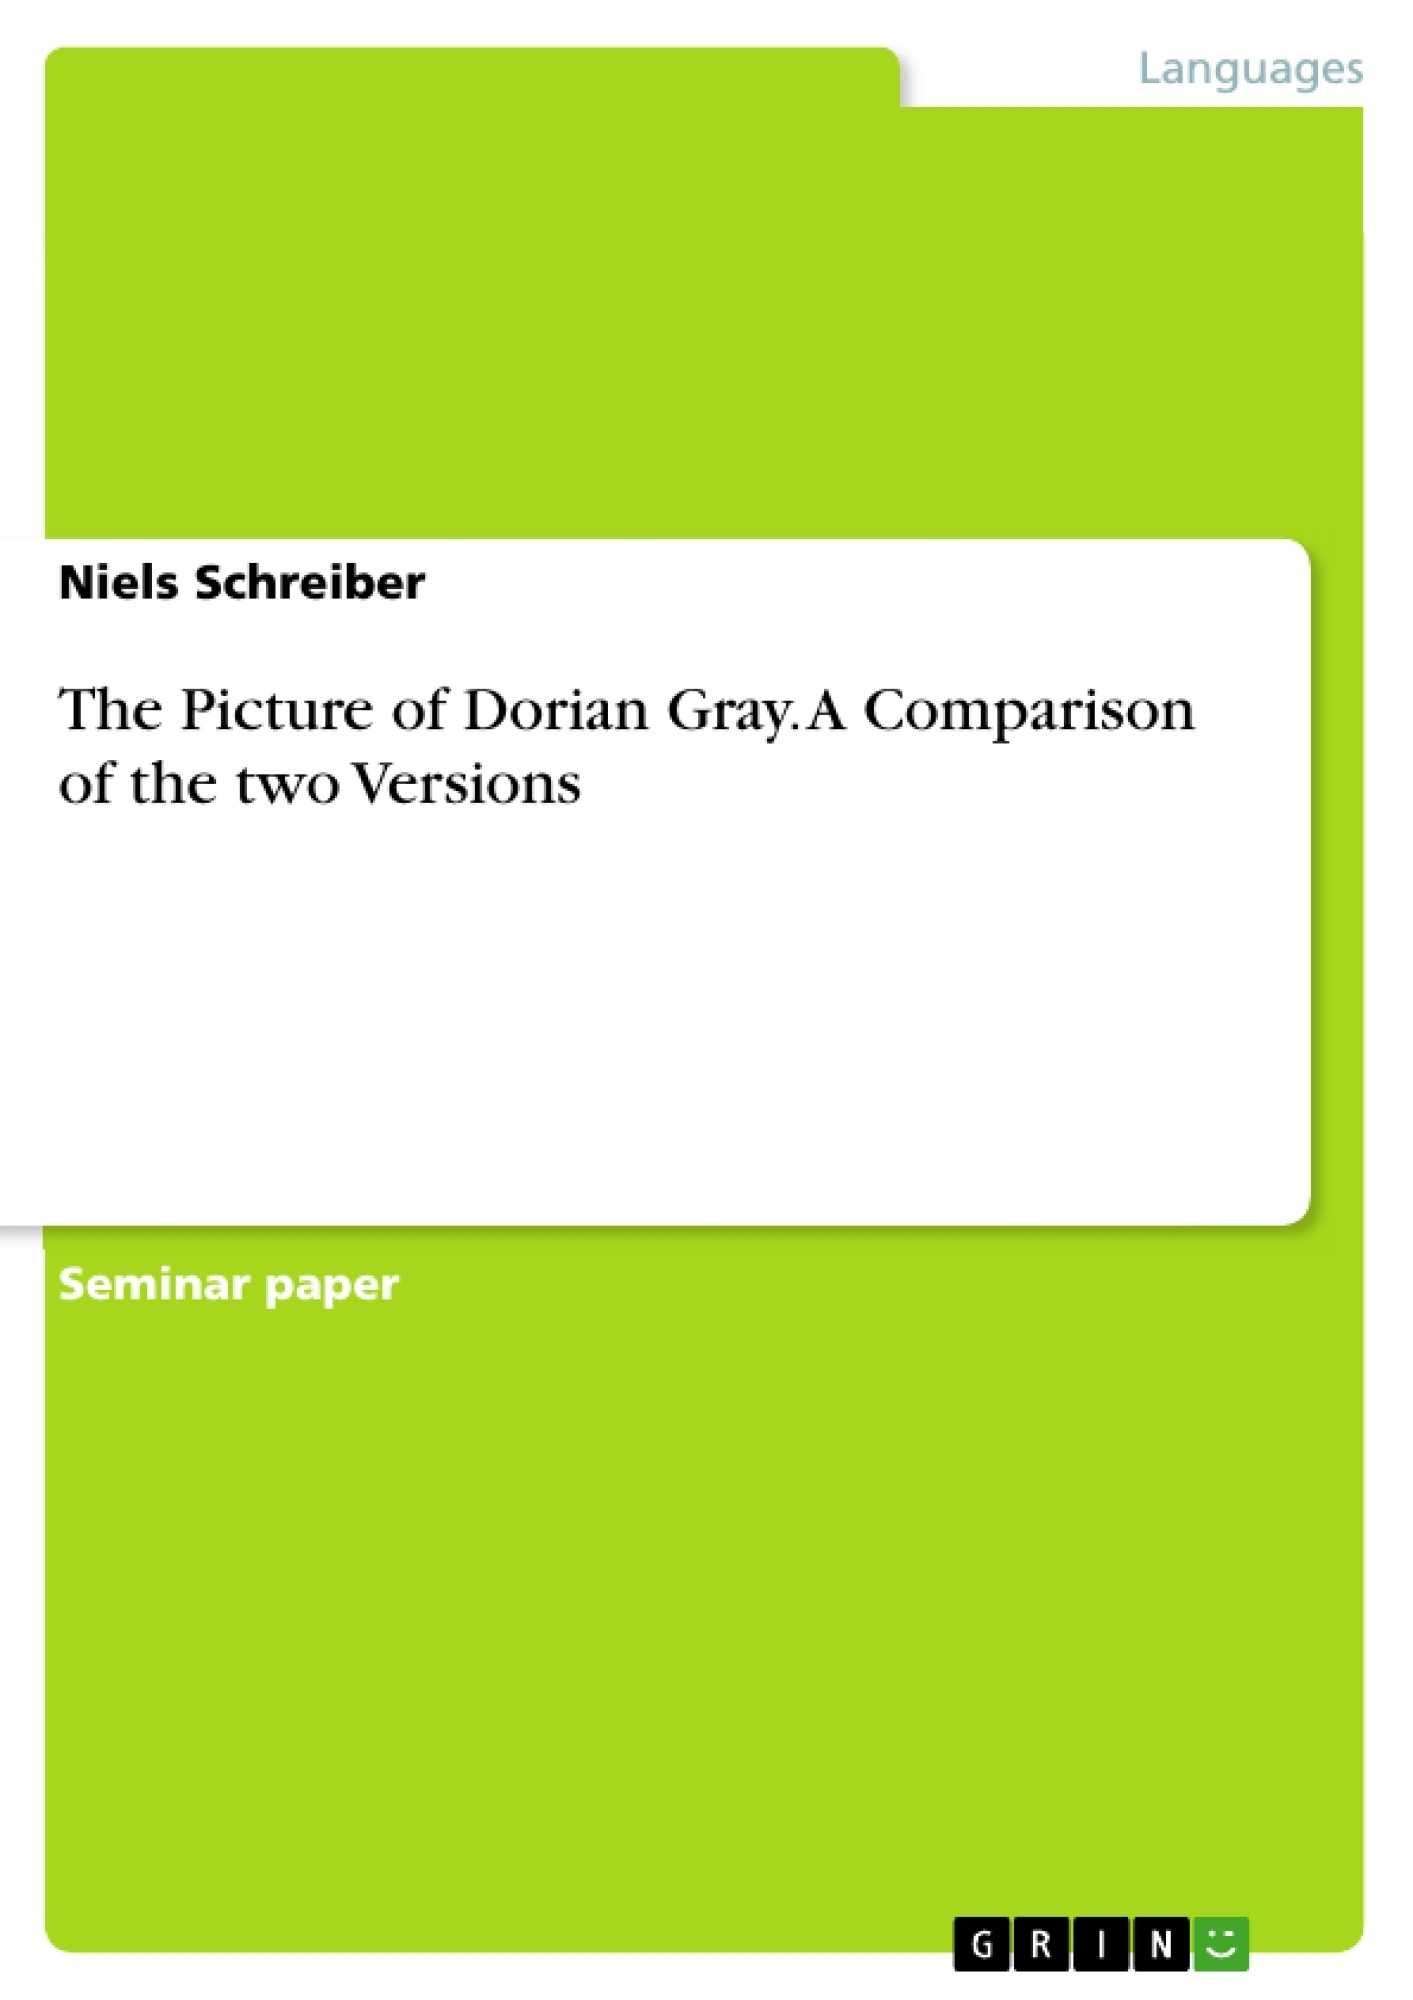 Title: The Picture of Dorian Gray. A Comparison of the two Versions